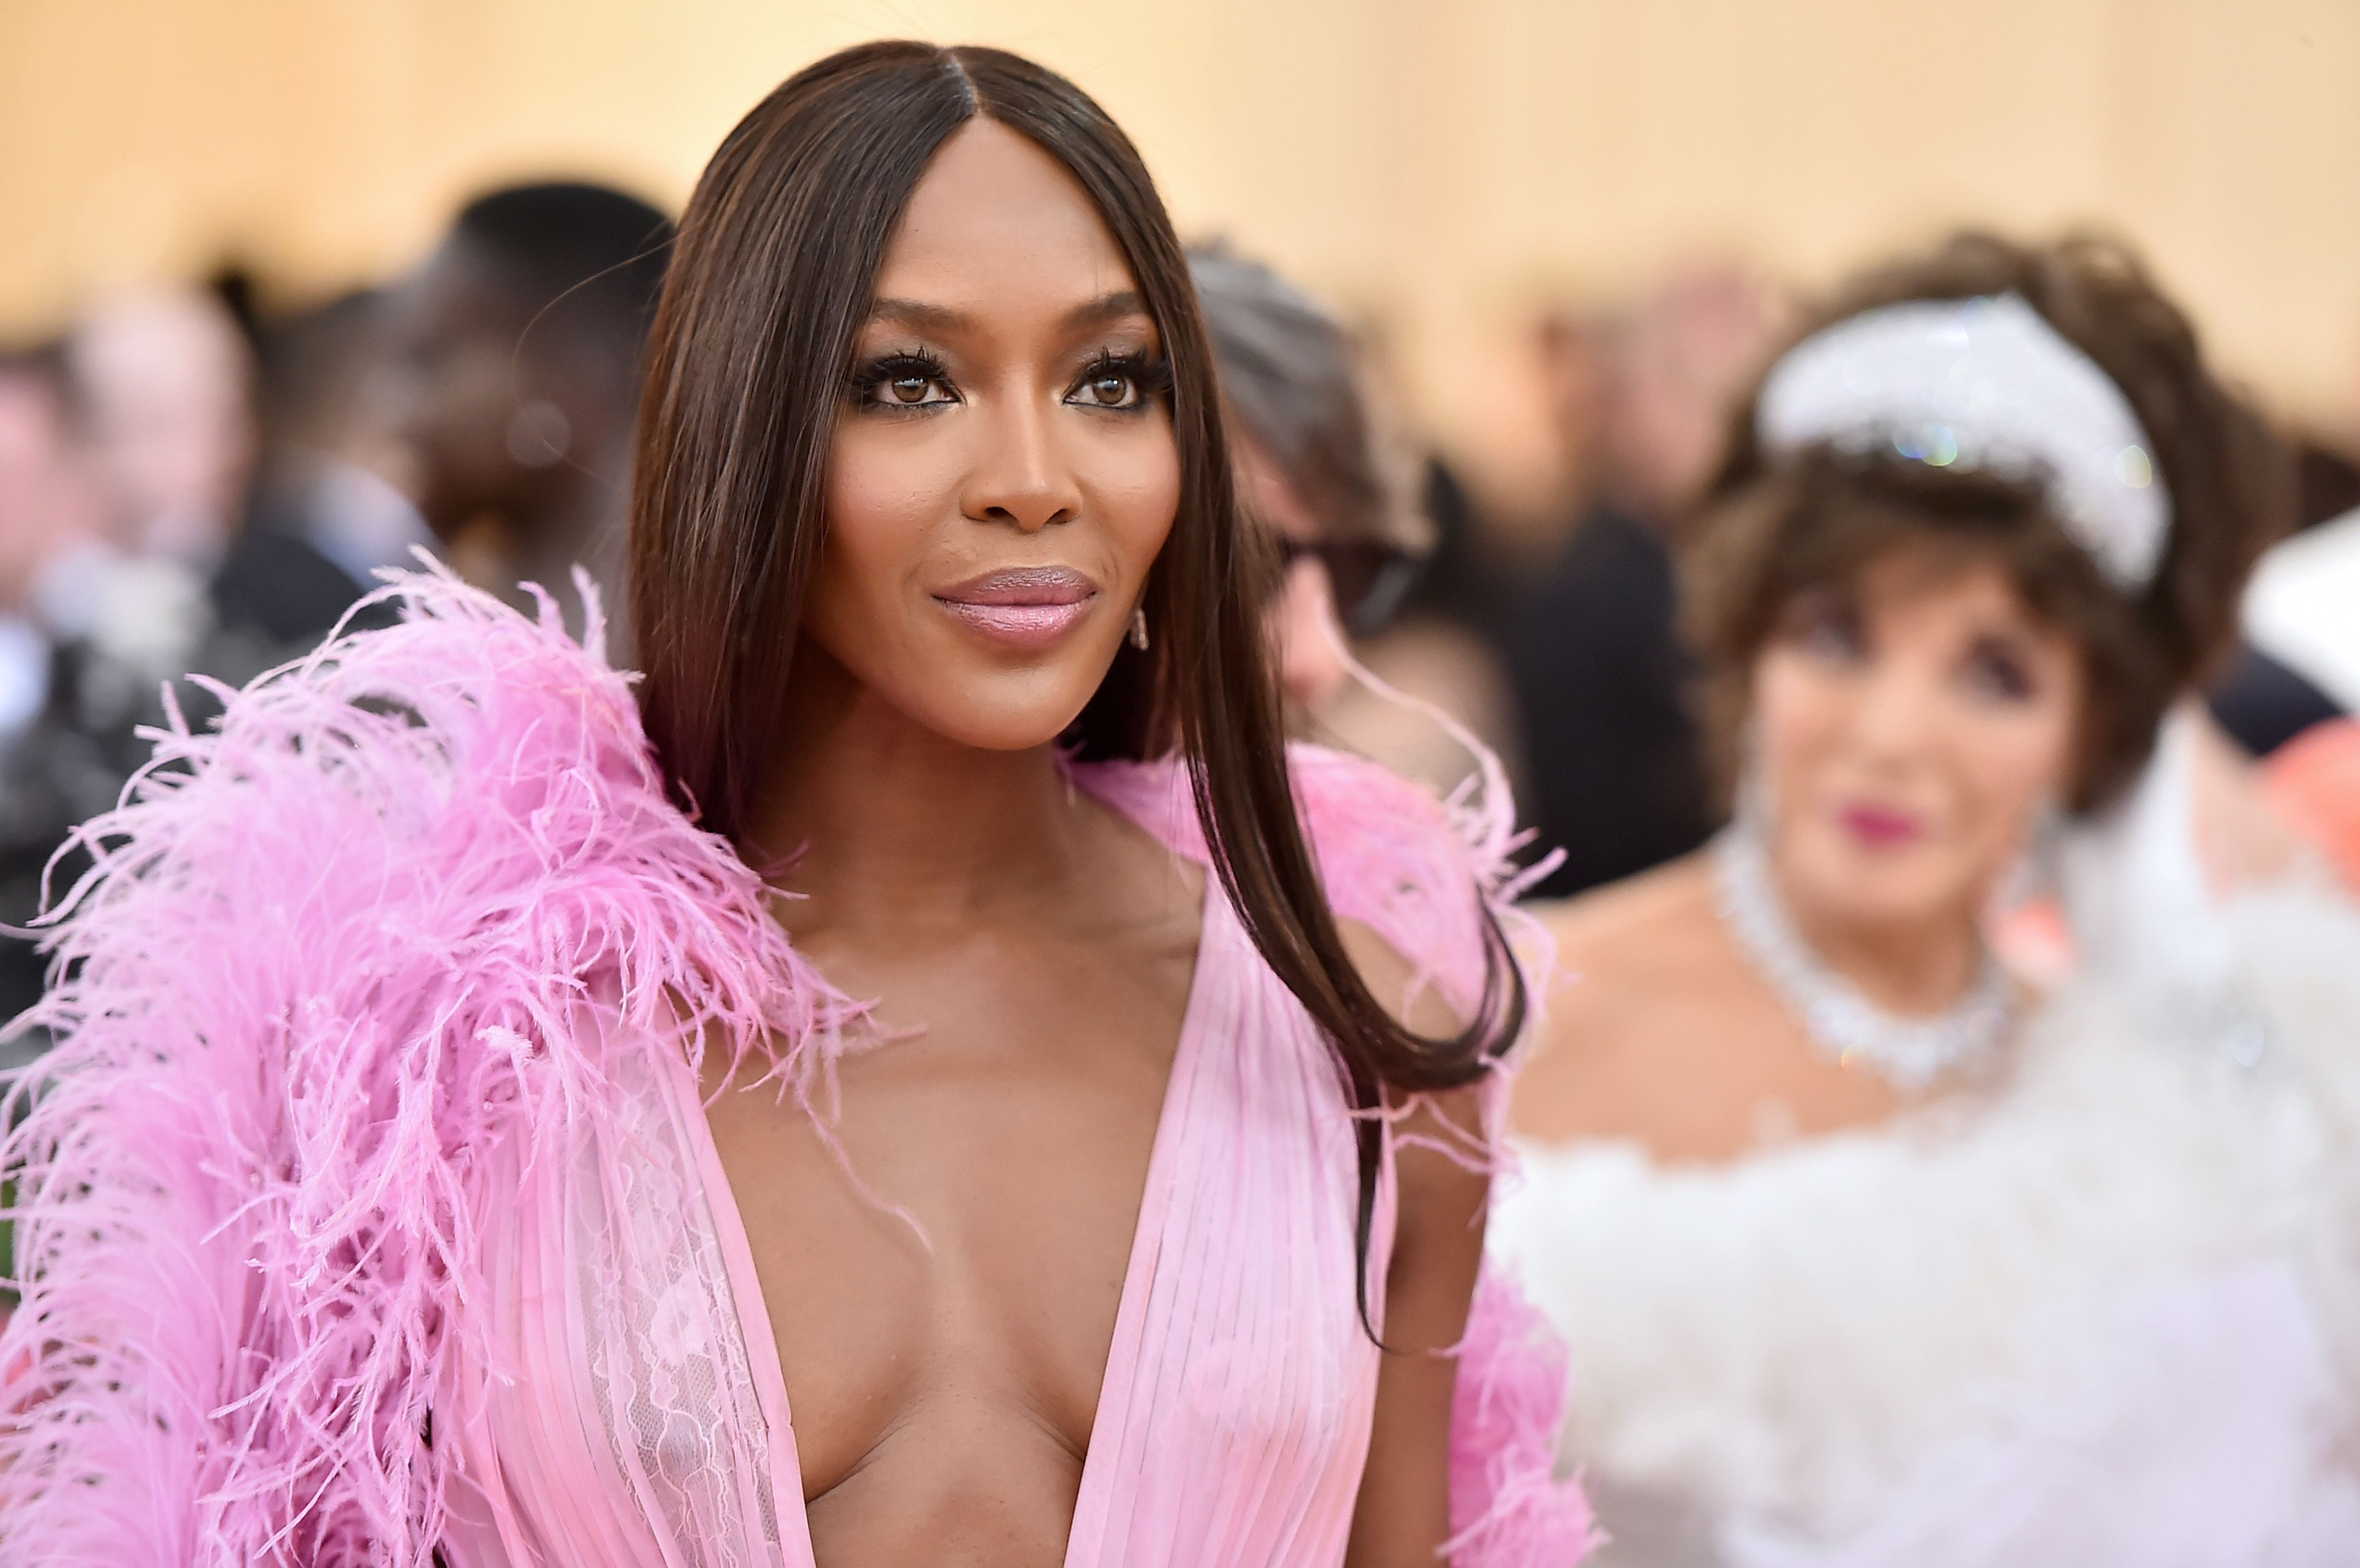 Naomi Campbell The supermodel might've worn a head-turning dress, but her glam for the night was classically glamorous: center parted long hair, pink lips, and smoky eyes.